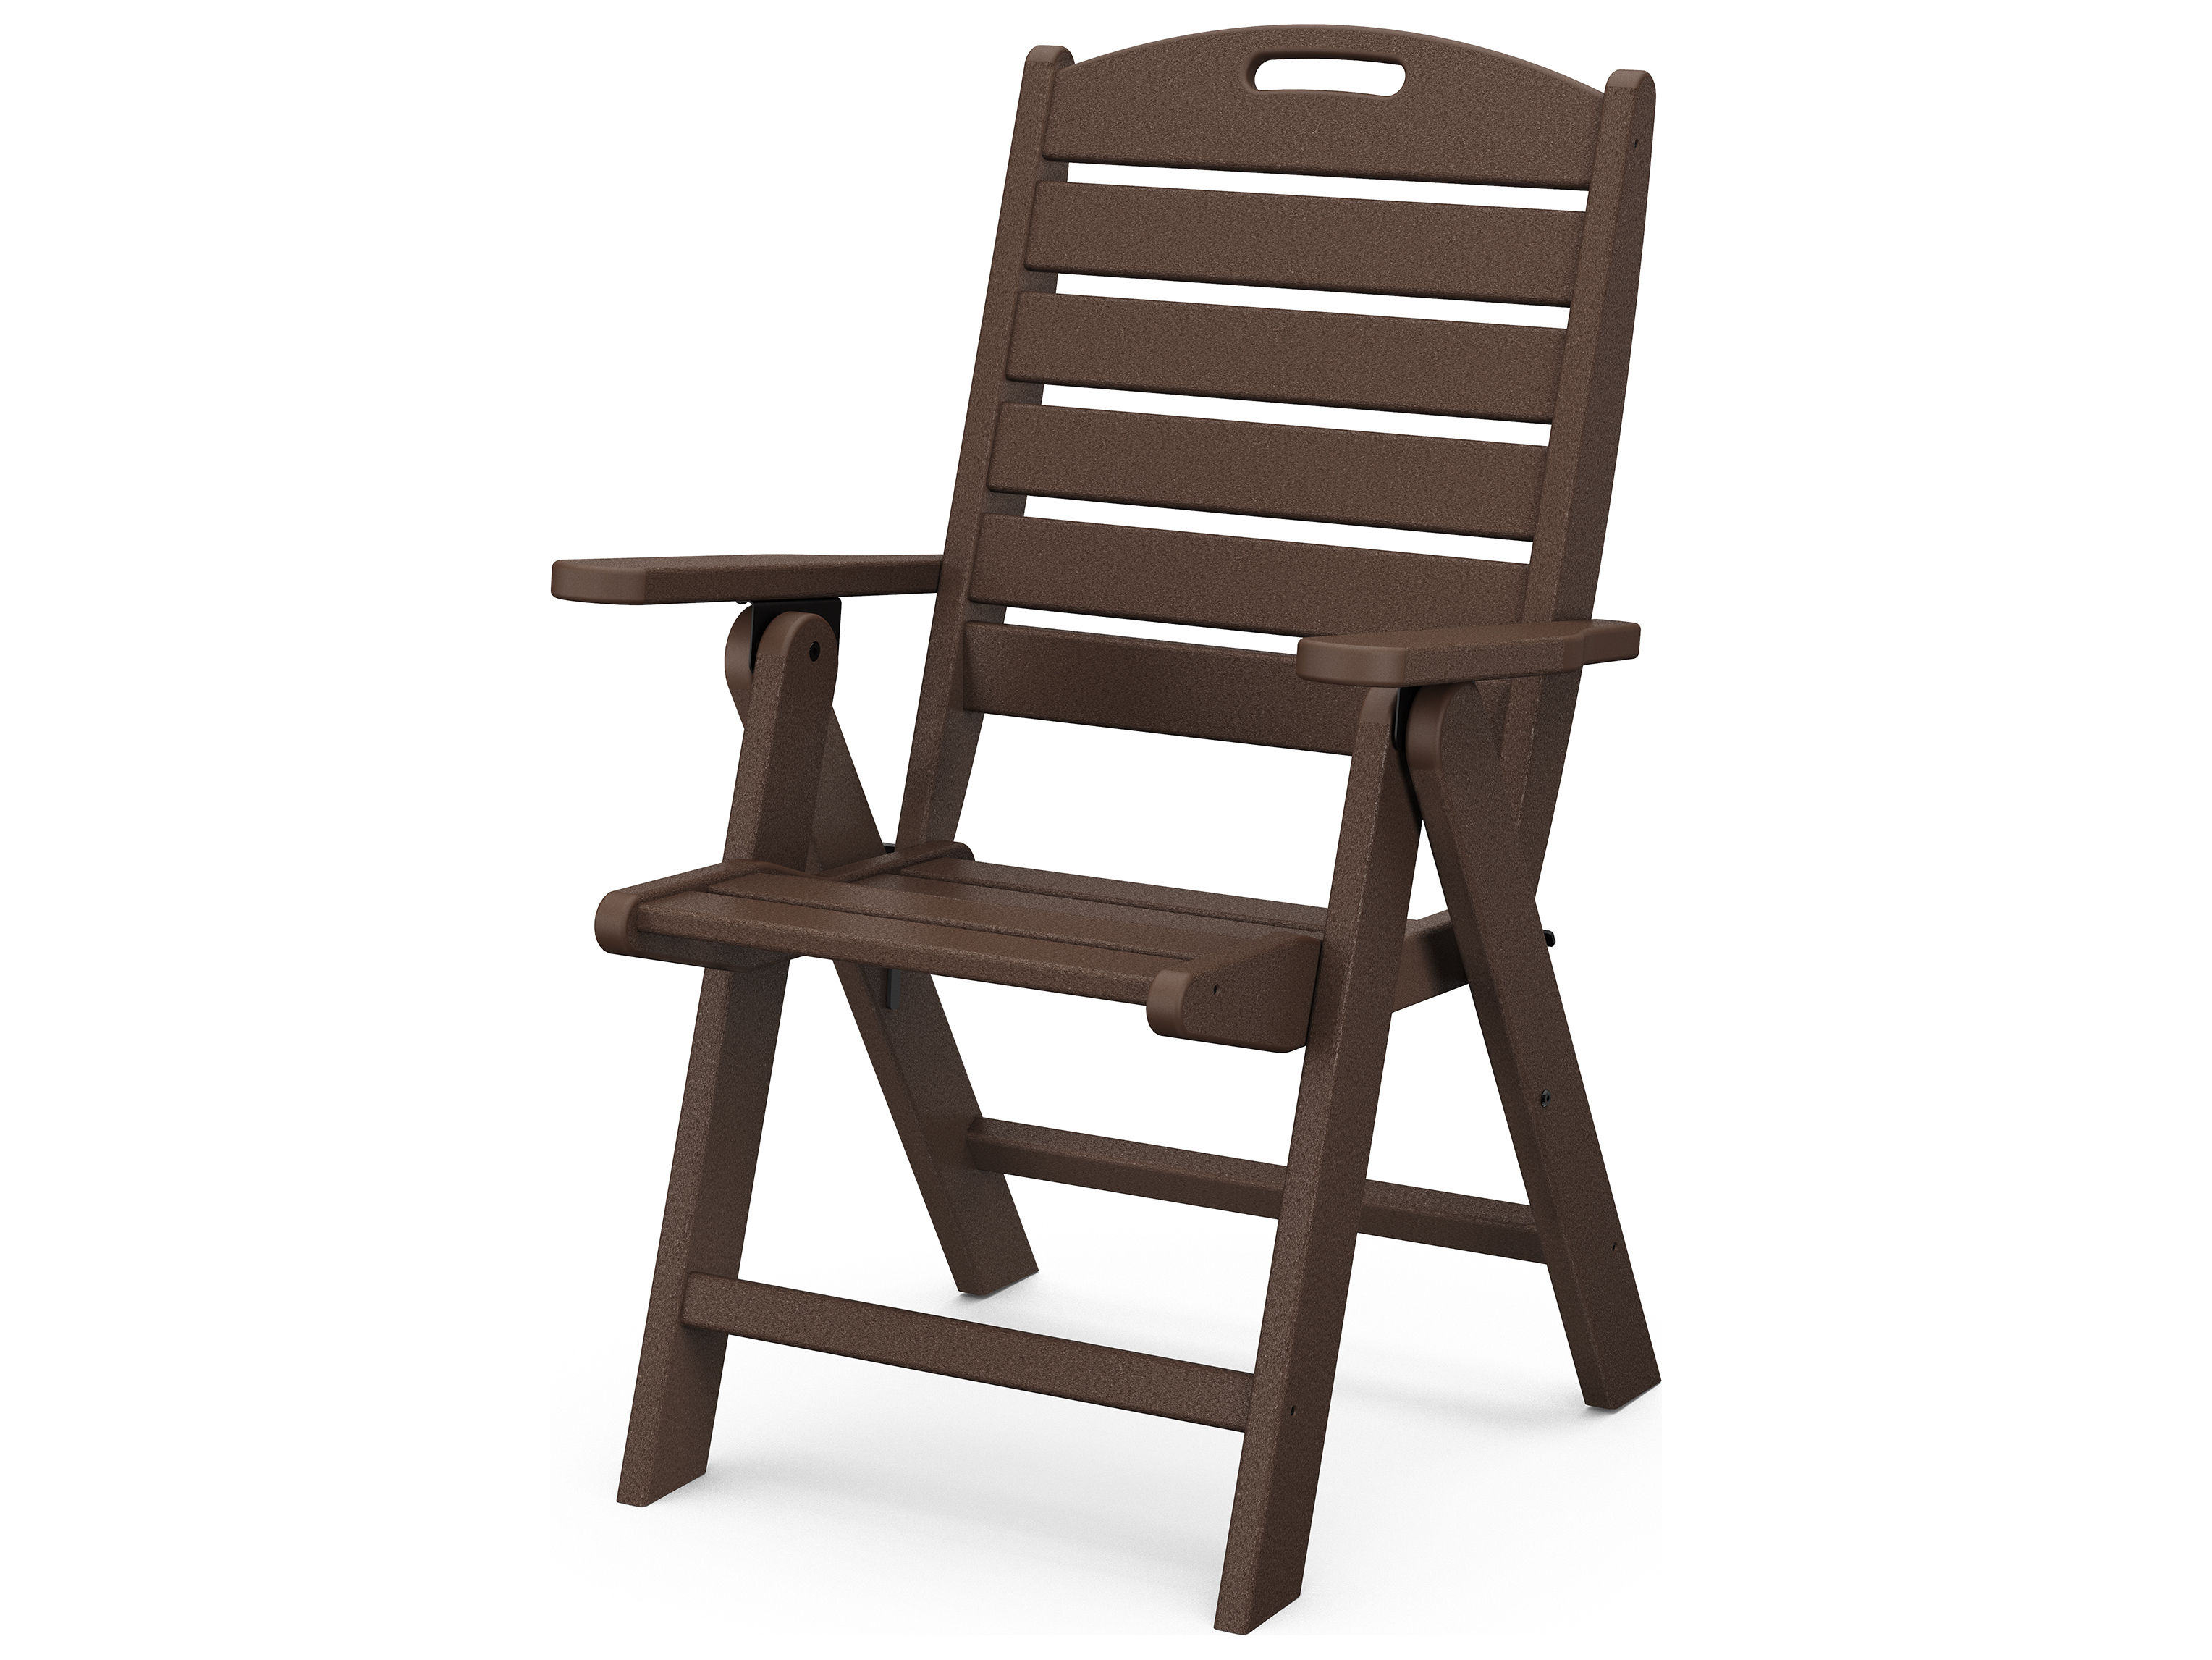 Polywood 174 Nautical Recycled Plastic Highback Chair Nch38